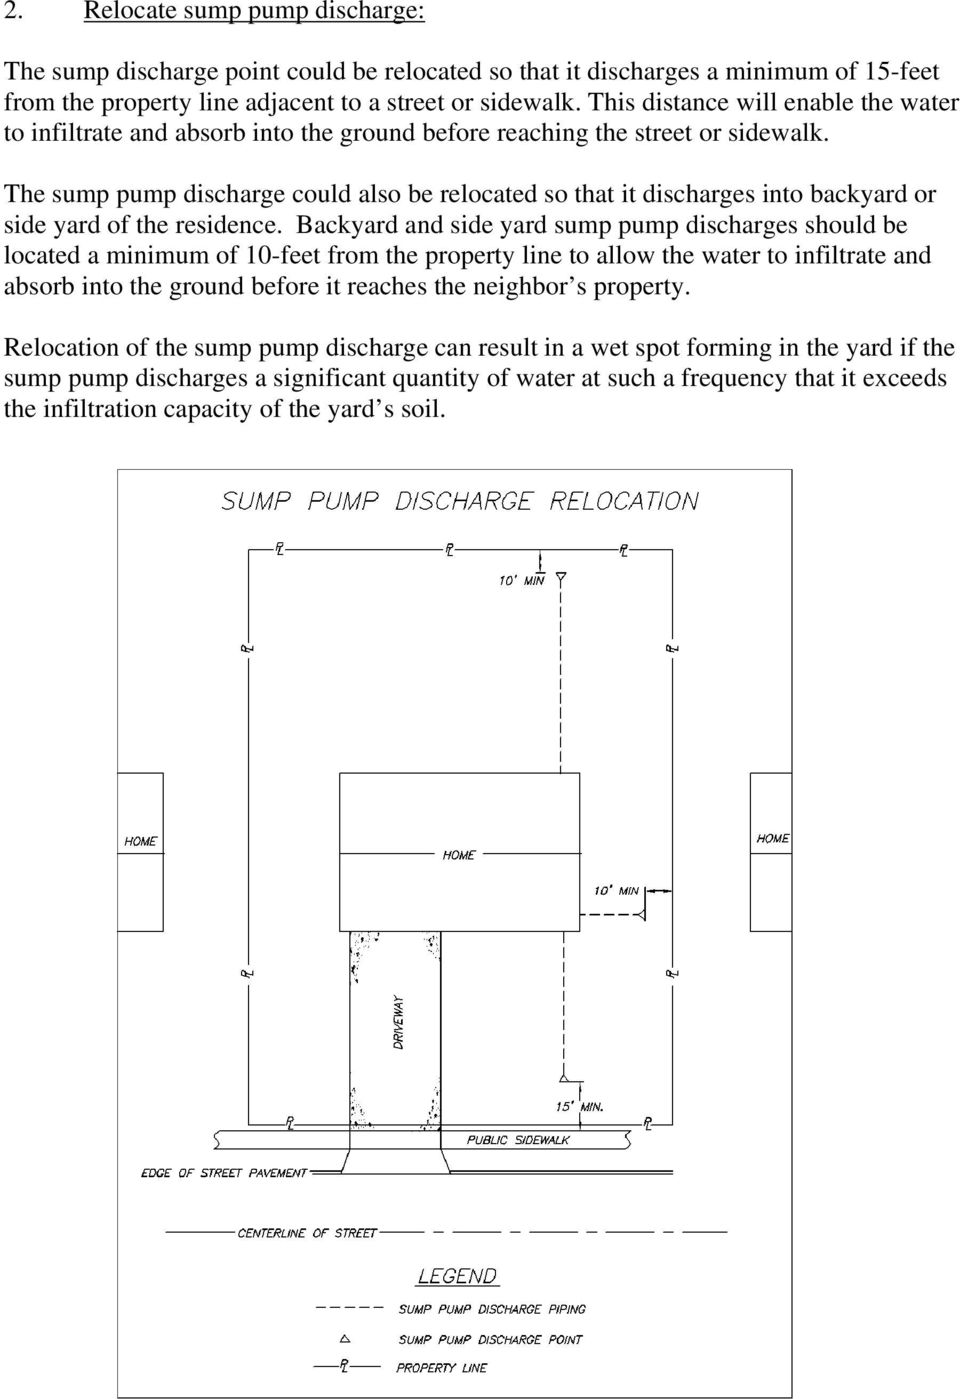 The sump pump discharge could also be relocated so that it discharges into backyard or side yard of the residence.